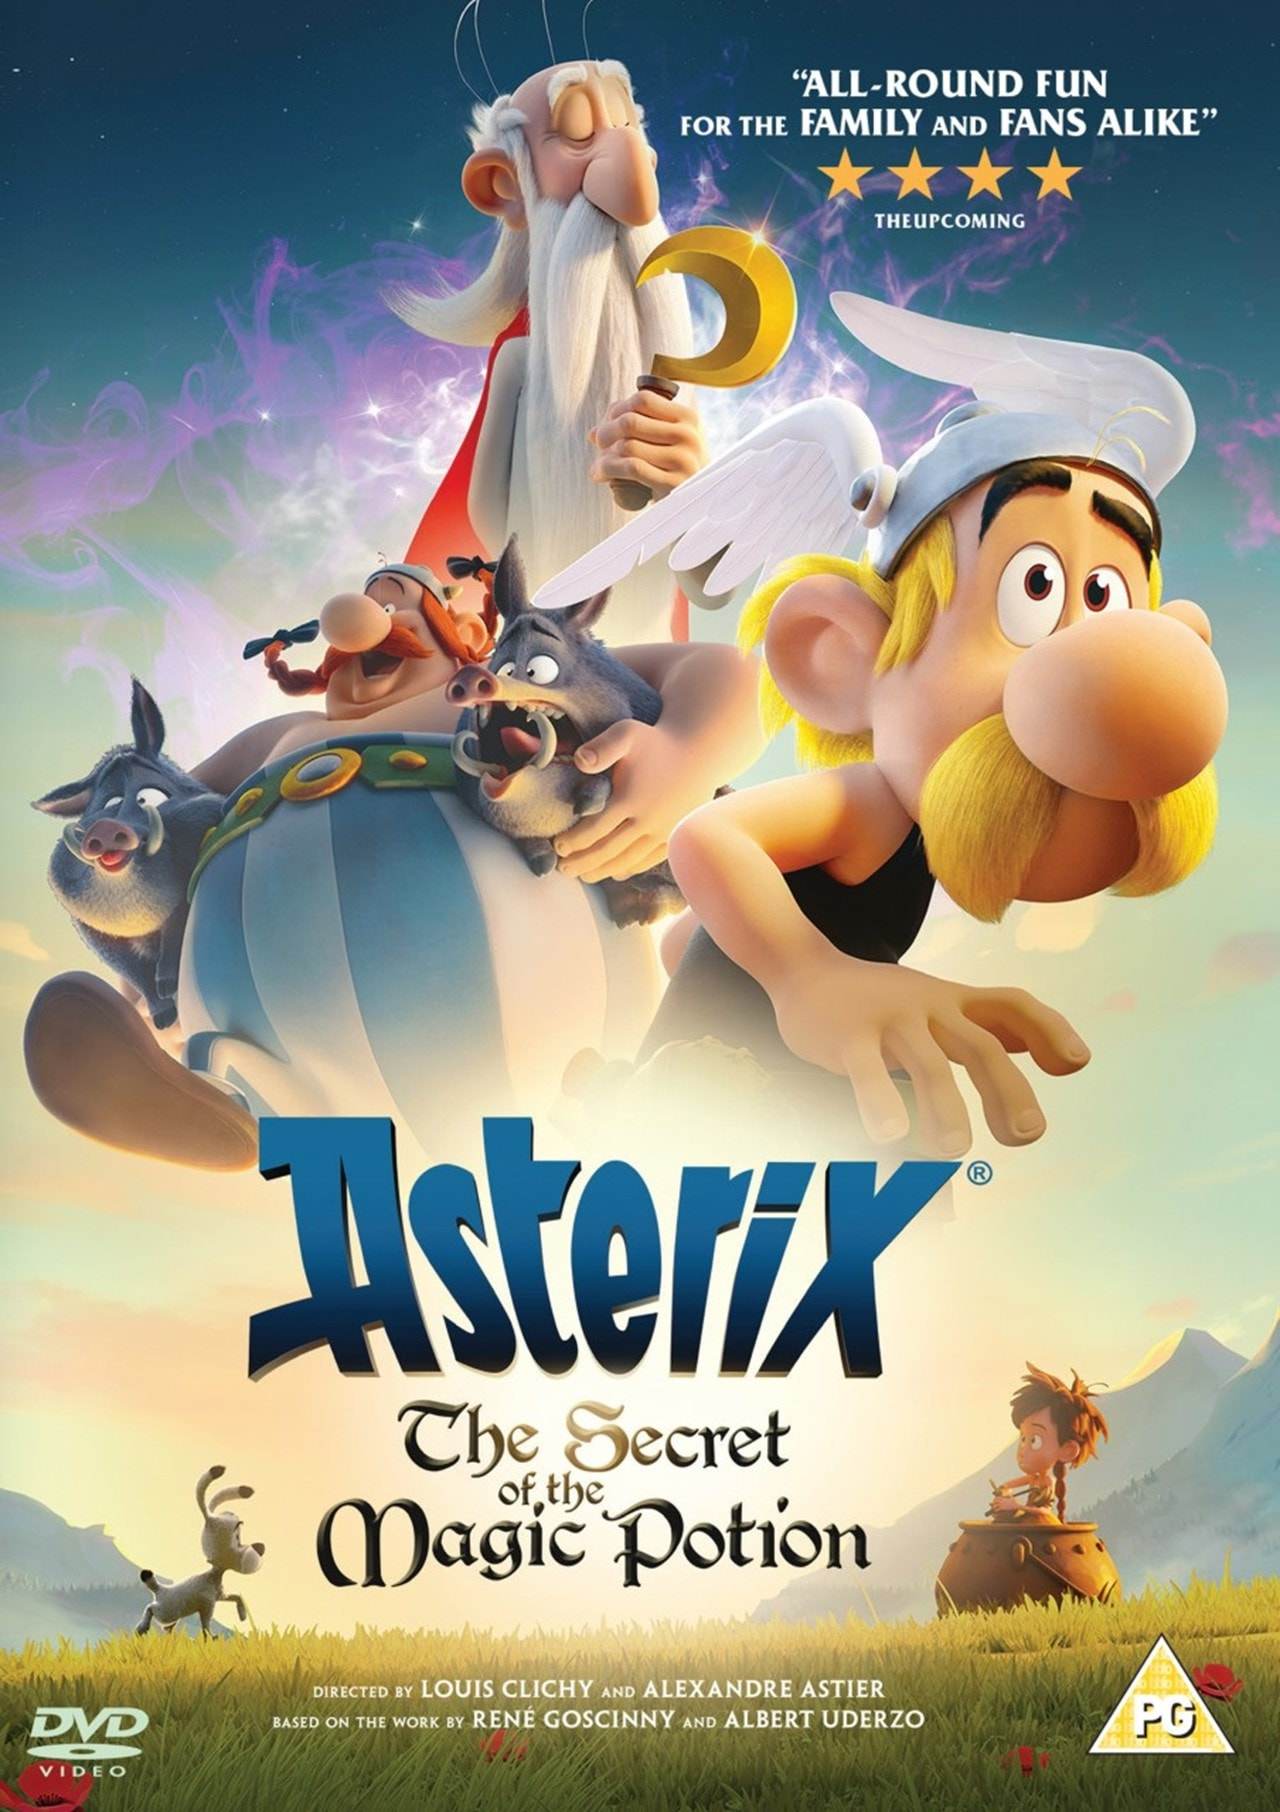 Asterix: The Secret of the Magic Potion - 1